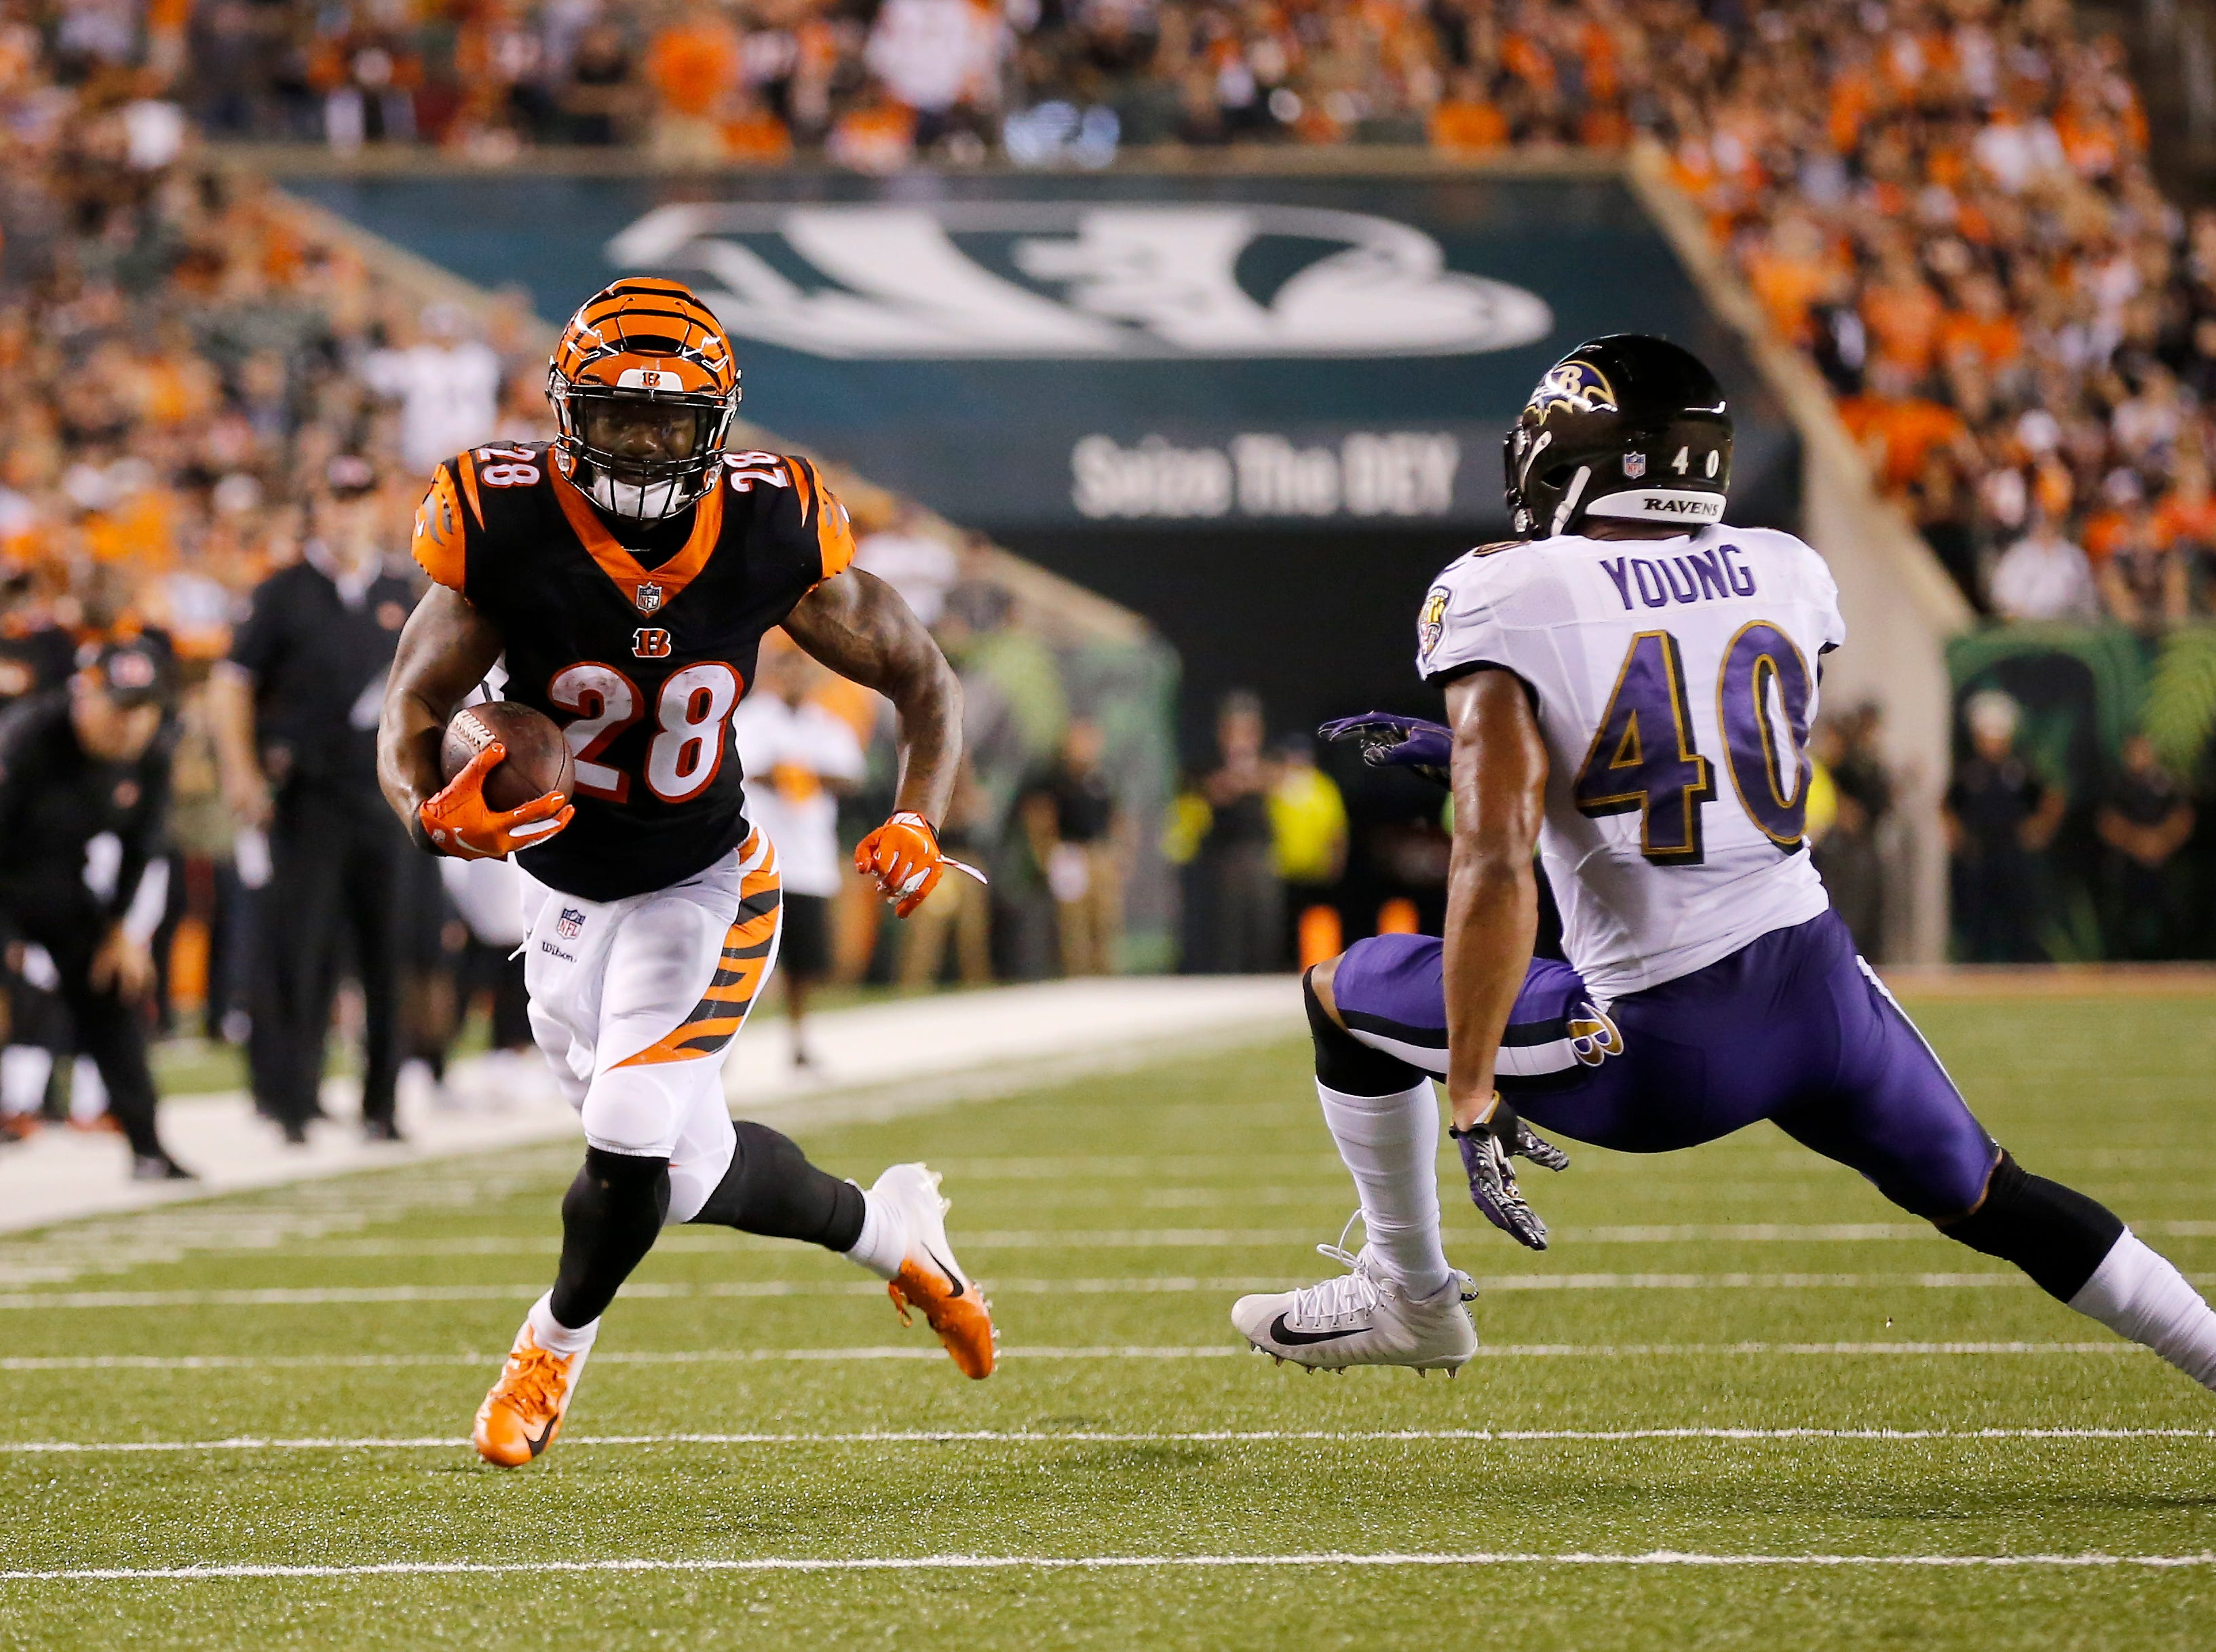 Cincinnati Bengals running back Joe Mixon (28) runs a catch past Baltimore Ravens linebacker Kenny Young (40) in the second quarter of the NFL Week 2 game between the Cincinnati Bengals and the Baltimore Ravens at Paul Brown Stadium in downtown Cincinnati on Thursday, Sept. 13, 2018. The Bengals led 28-14 at halftime.